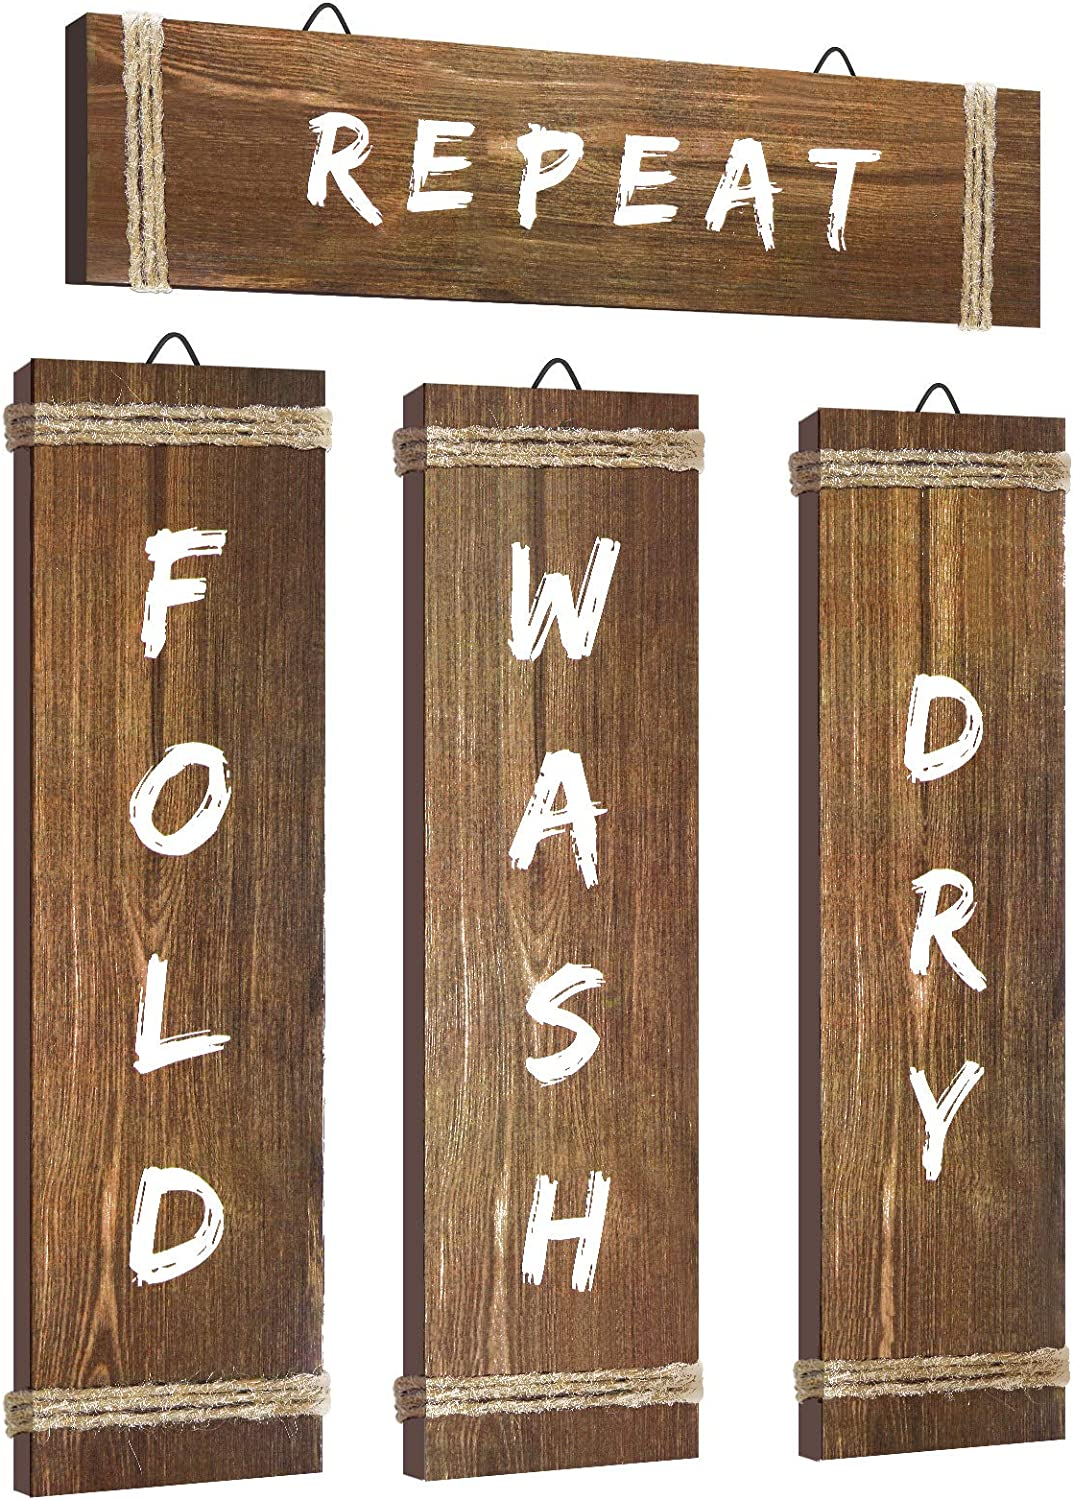 4 Pieces Laundry Room Decor Home Vintage Wooden Decoration Rustic Farmhouse Laundry Sign Wooden Laundry Room Decoration Retro Wash Wall Art for Home Hanging Decor Door Wall, 12 x 3 x 0.2 Inch